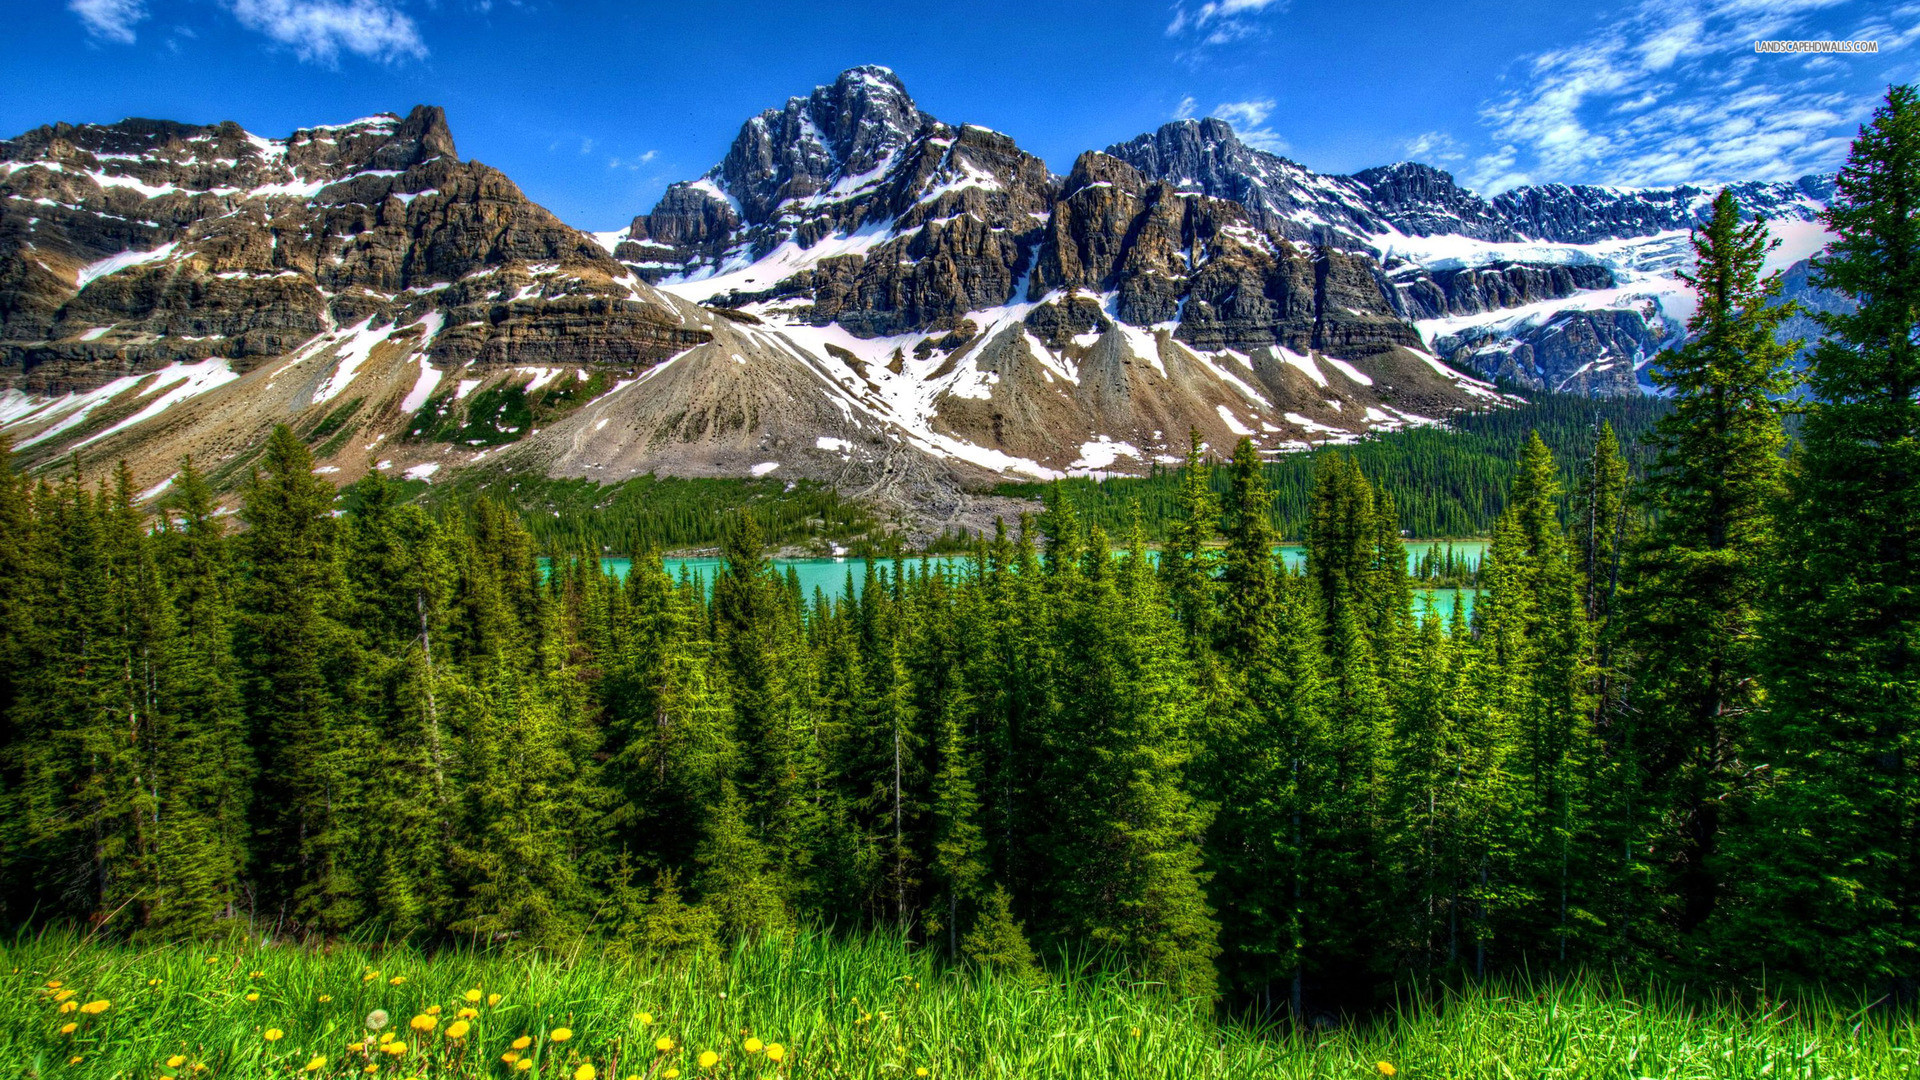 1920x1080 hd nature wallpaper banff national park